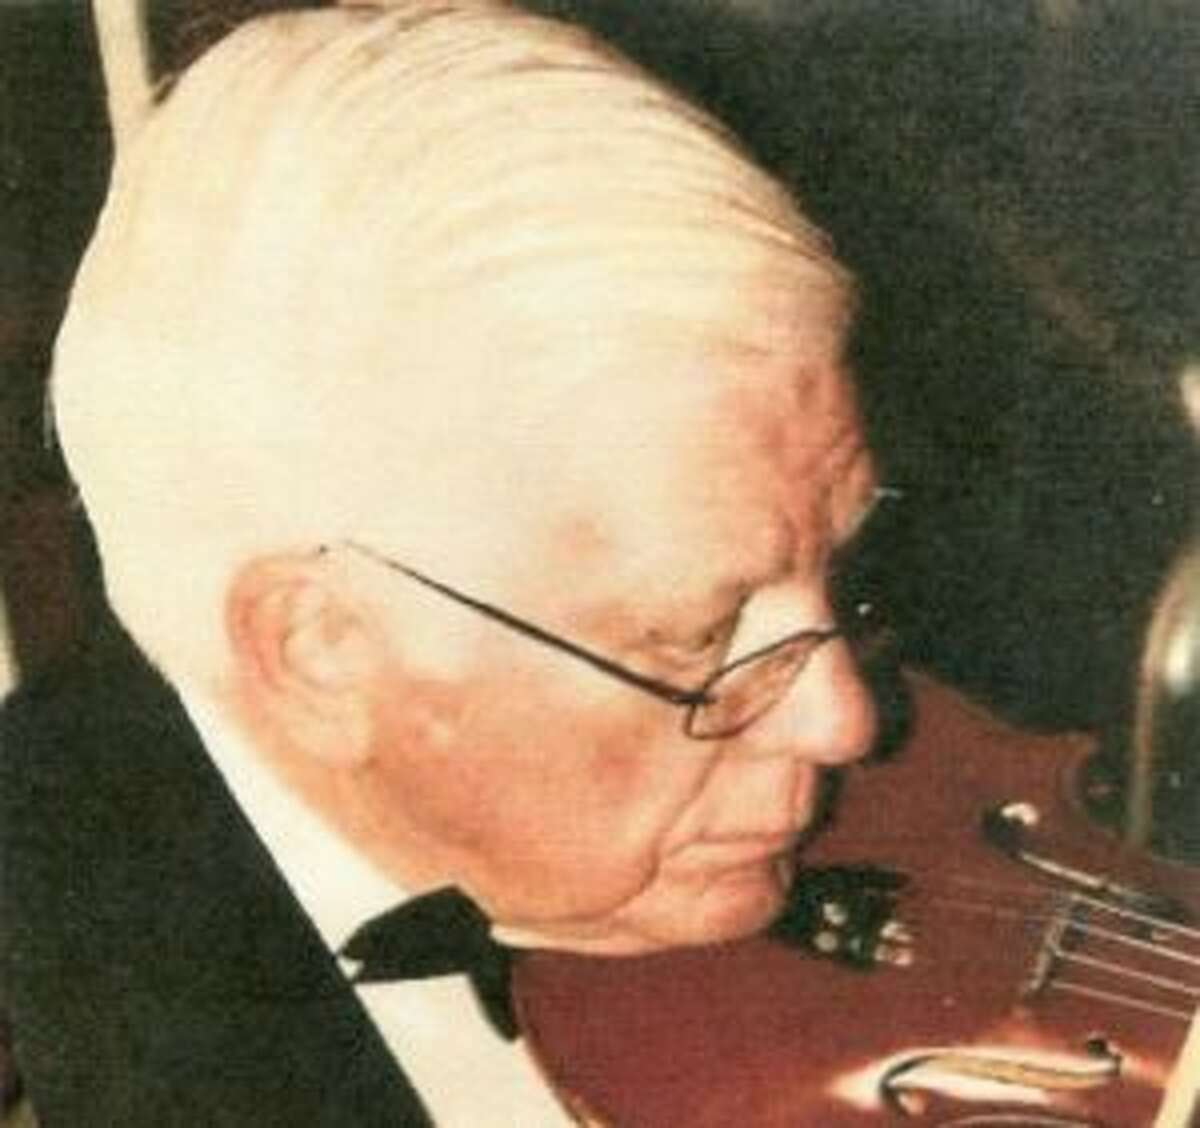 Richard Turkington. The violinist in the West Haven Symphony Orchestra and the Nutmeg Symphonic Pops Orchestra served in the U.S. Army Air Corps during WWII. Turkington was also a volunteer at the Milford Police Department for 15 years in the Crime Prevention Unit and a Red Cross Volunteer Driver for many years. He died on Jan. 3, 2019.   Read more: Obituary: Richard E. Turkington, 93